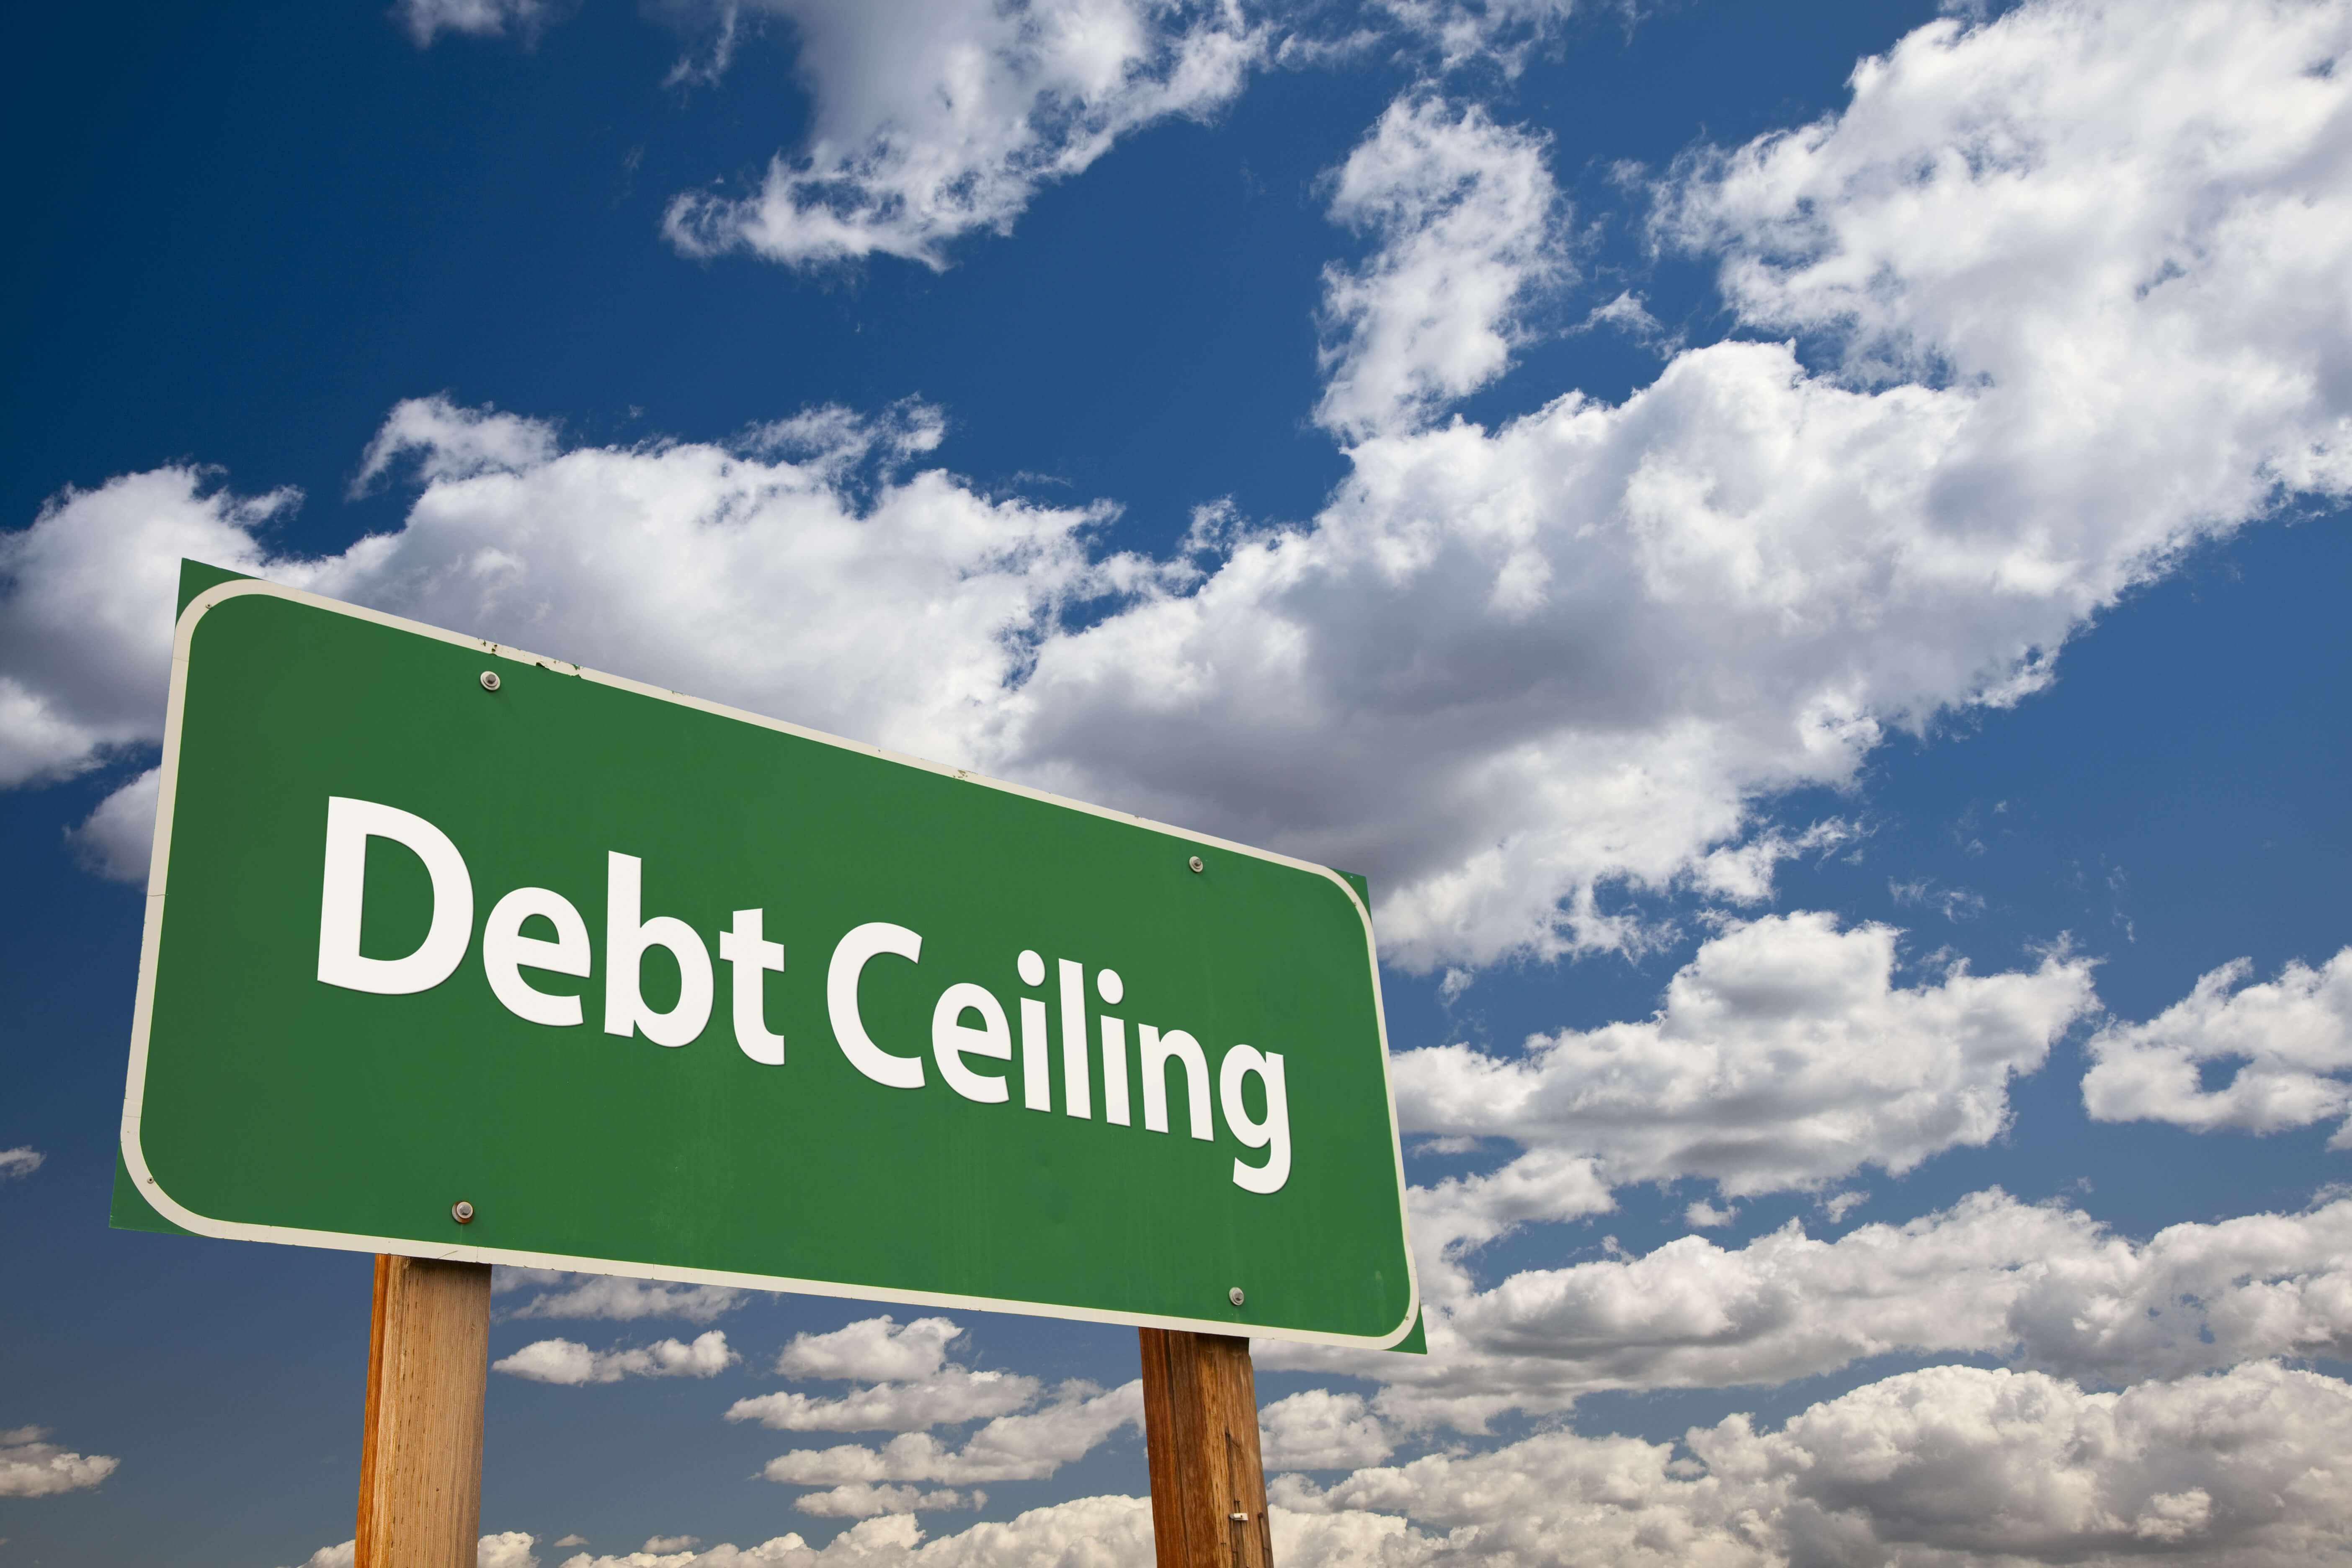 Congress reached an agreement to suspend the debt ceiling